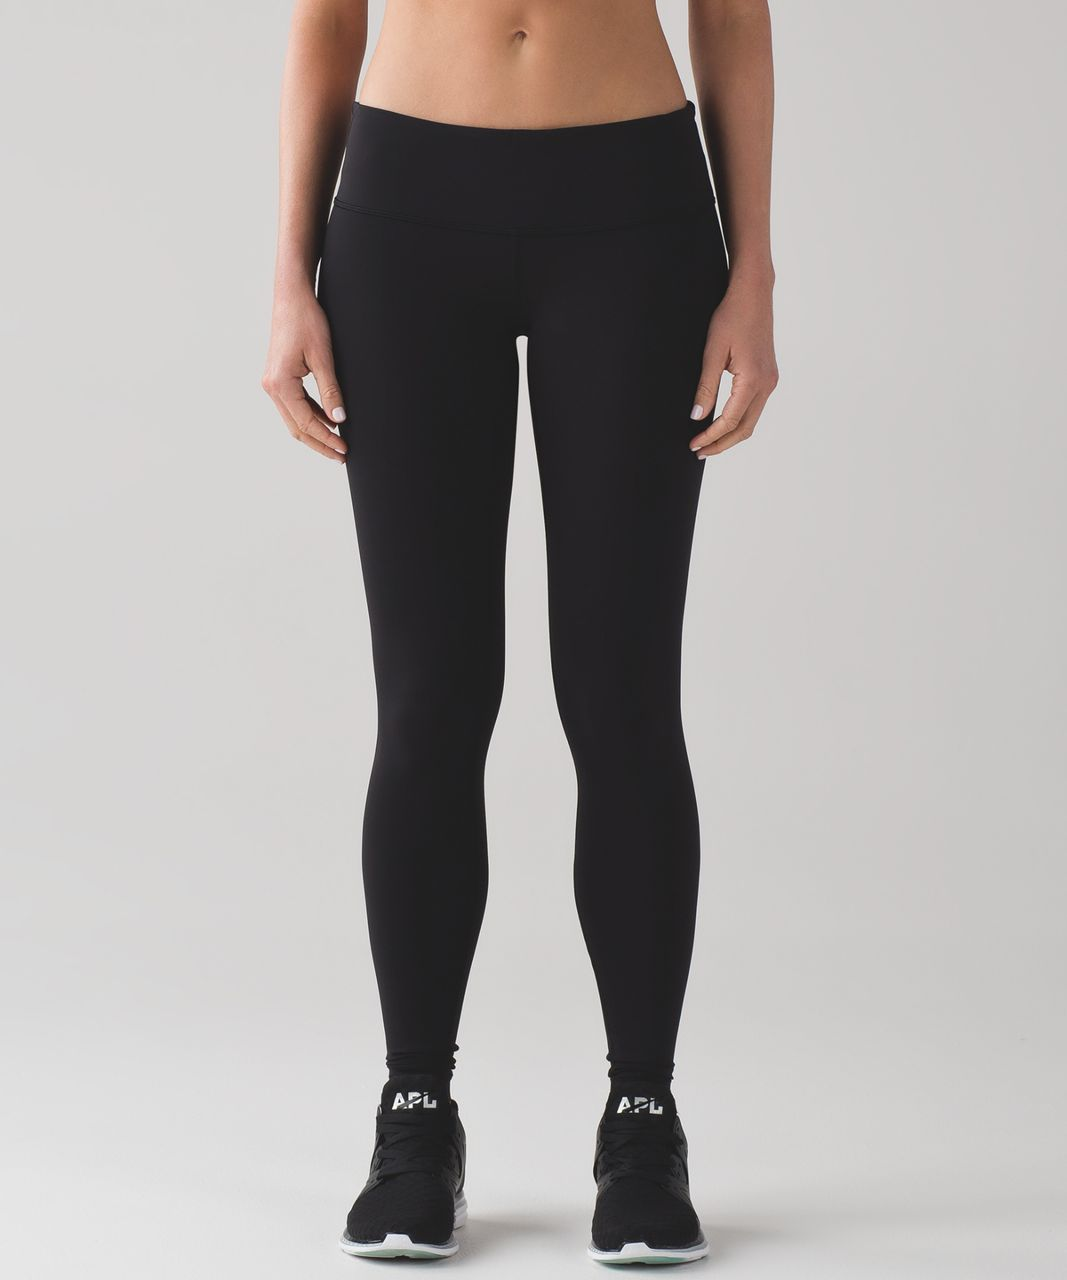 bf7aed7572 Lululemon Wunder Under Low-Rise Tight (Full-On Luxtreme) - Black - lulu  fanatics